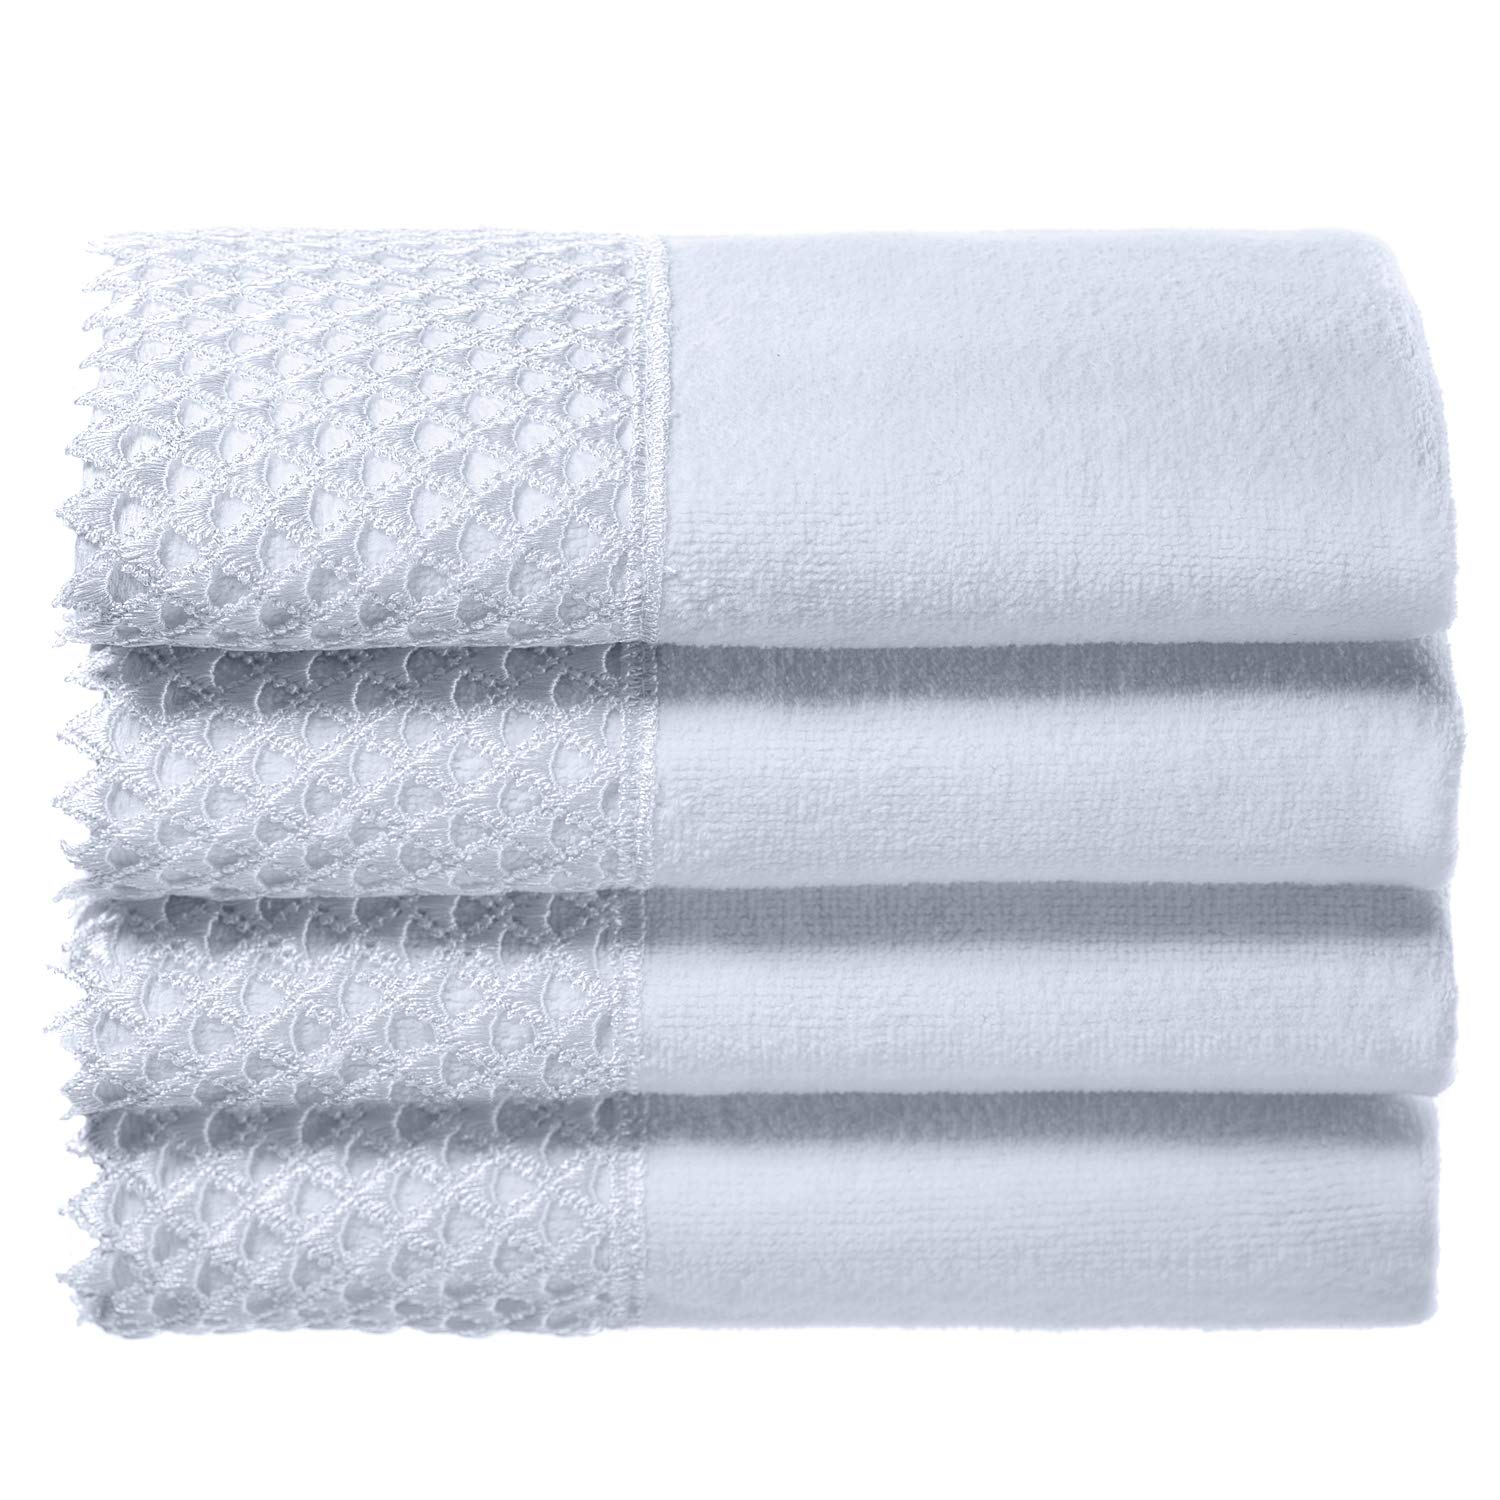 Creative Scents Cotton Velour Fingertip Towels, 4 Piece Set, 11 by 18-Inch, Decorative Towel Set with White Lace for Bathroom, Powder Room, Gift Packaged (White) by Creative Scents